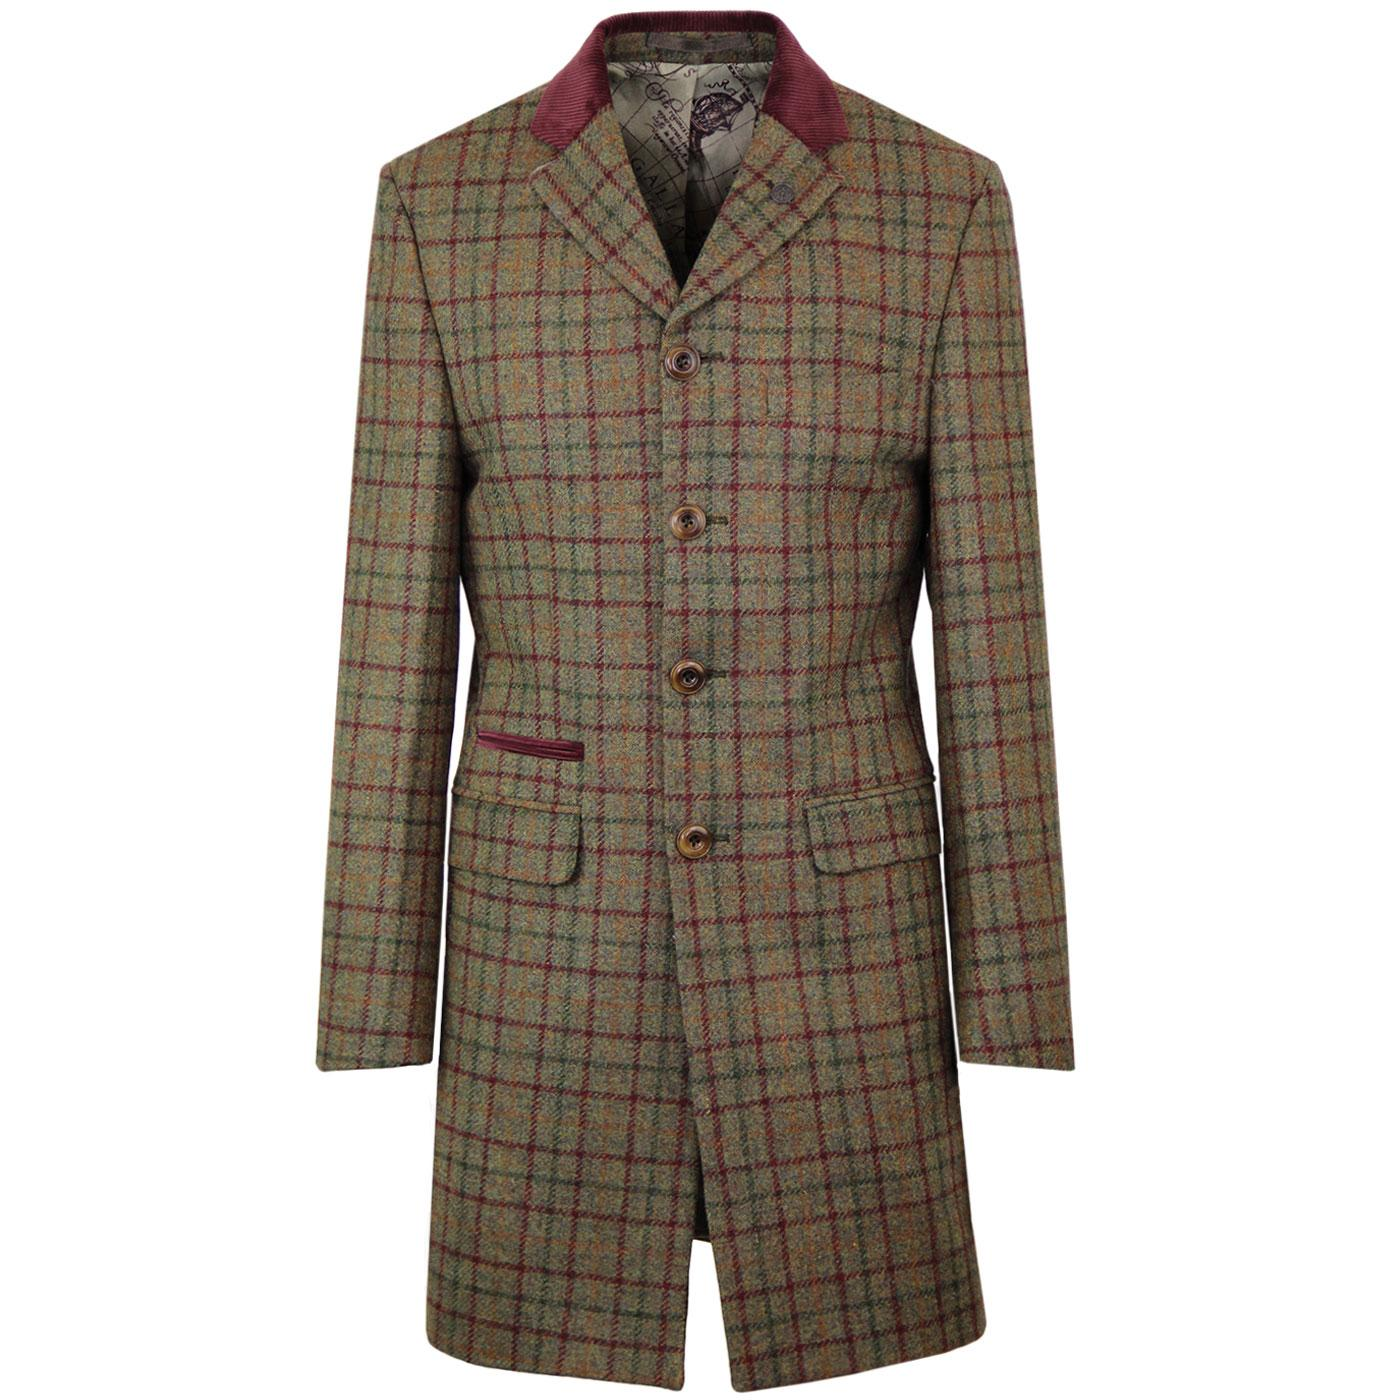 Winnie GIBSON LONDON Cord Collar Check Dress Coat